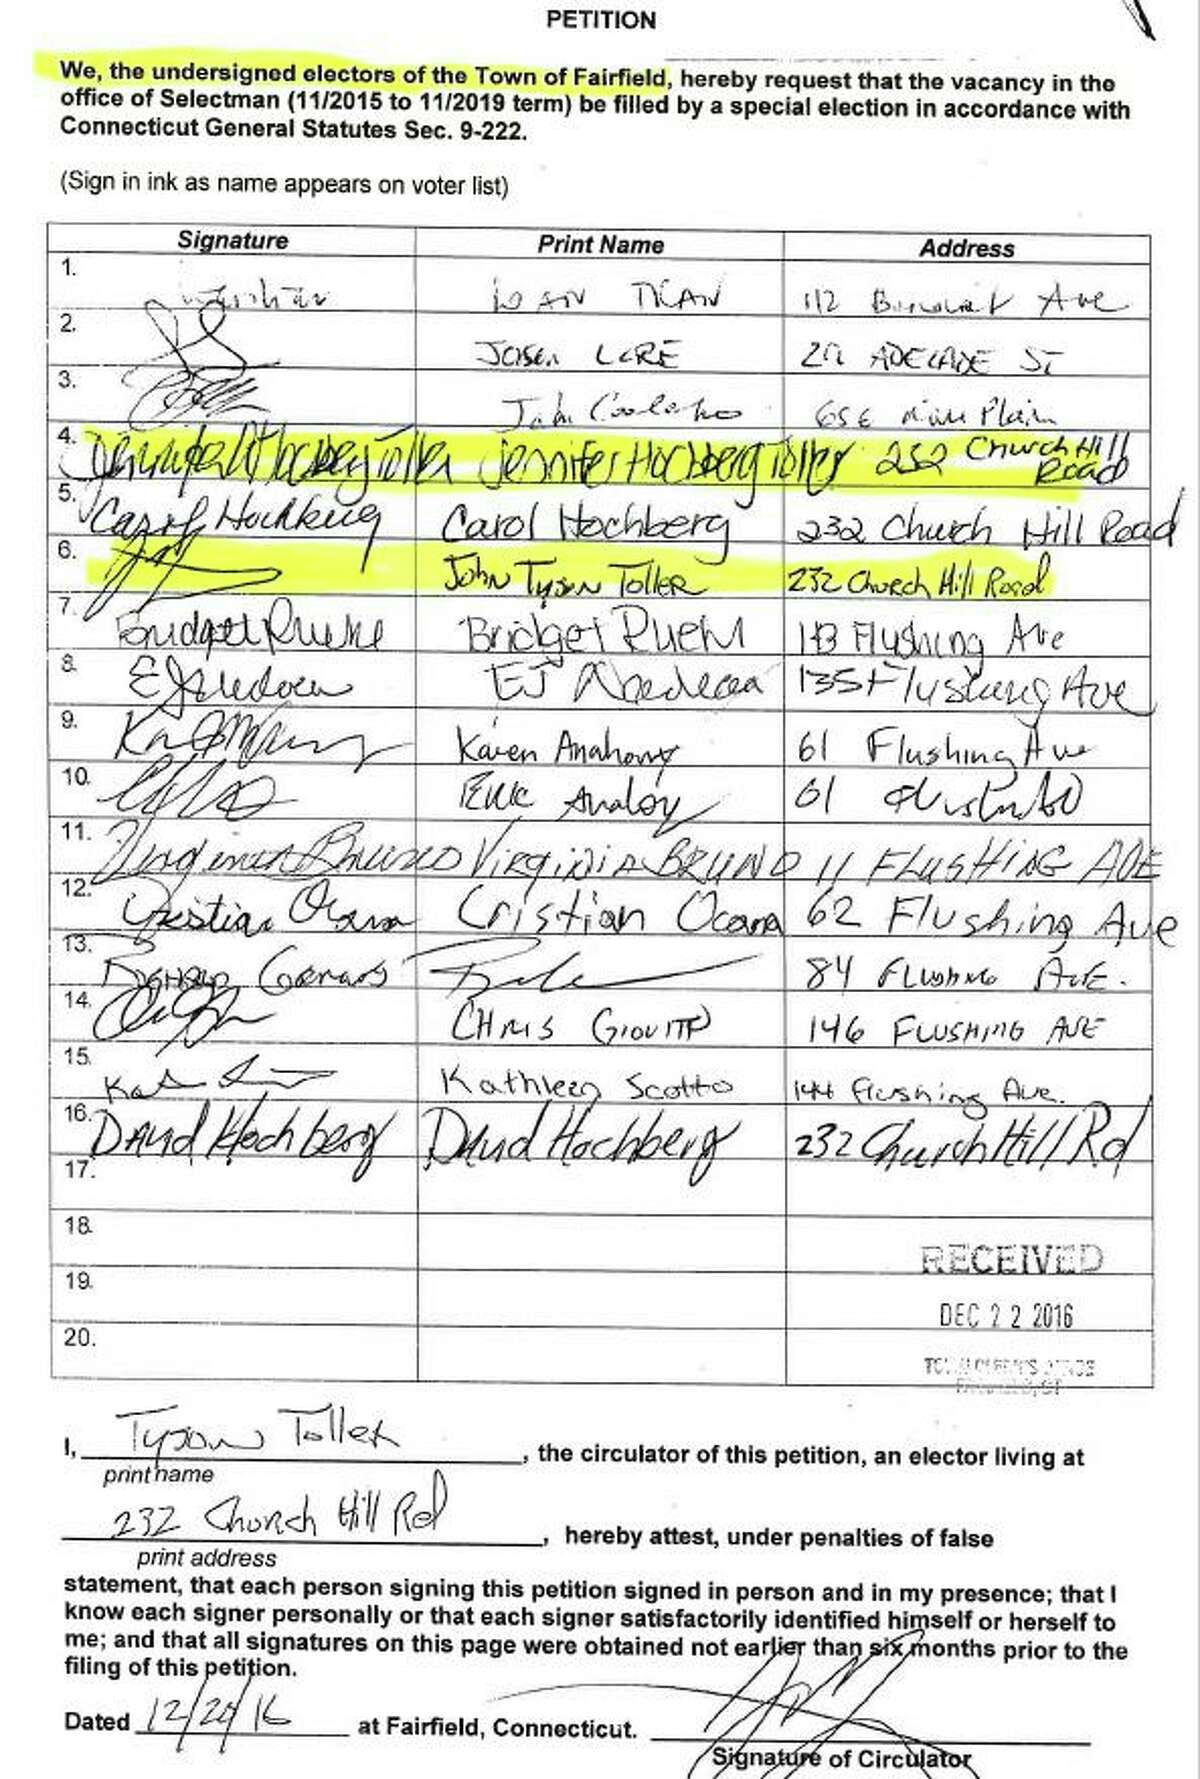 A petition form seeking a special election signed by both Jennifer Hochberg-Toller, and her husband John Tyson Toller, listing their address as 232 Church Hil Road in Fairfield. The couple had apparently moved out of town months earlier. John Tyson Toller also solicited signatures for the petition drive. Fairfield,CT. 11/1/17